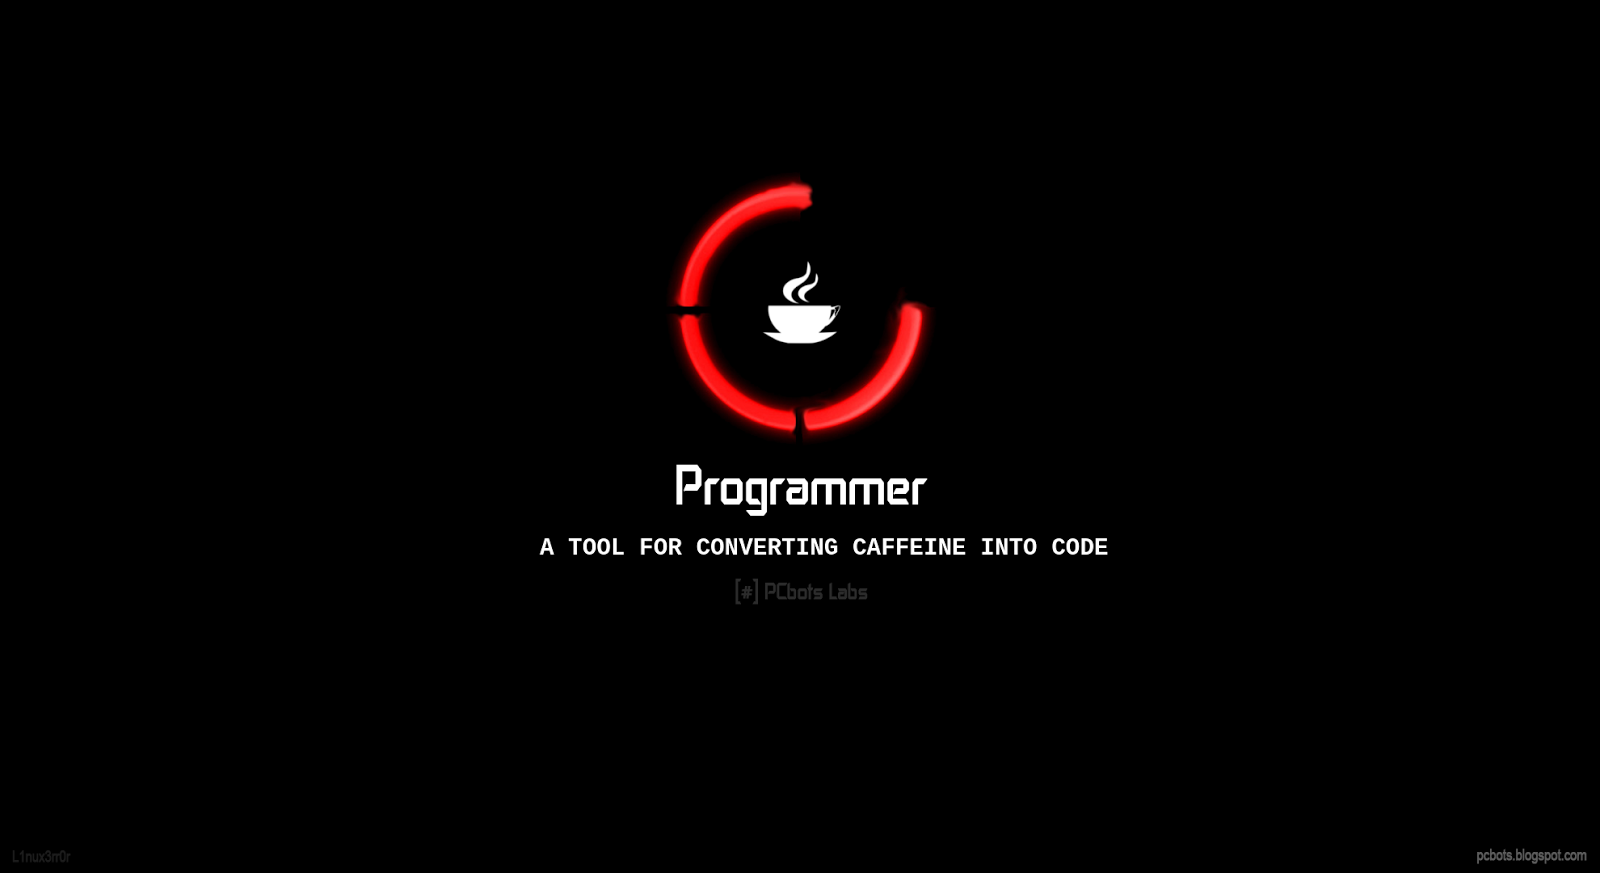 Programmers And Coders Wallpapers HD By PCbots - Part - II ~ PCbots Blog | Programmer ...